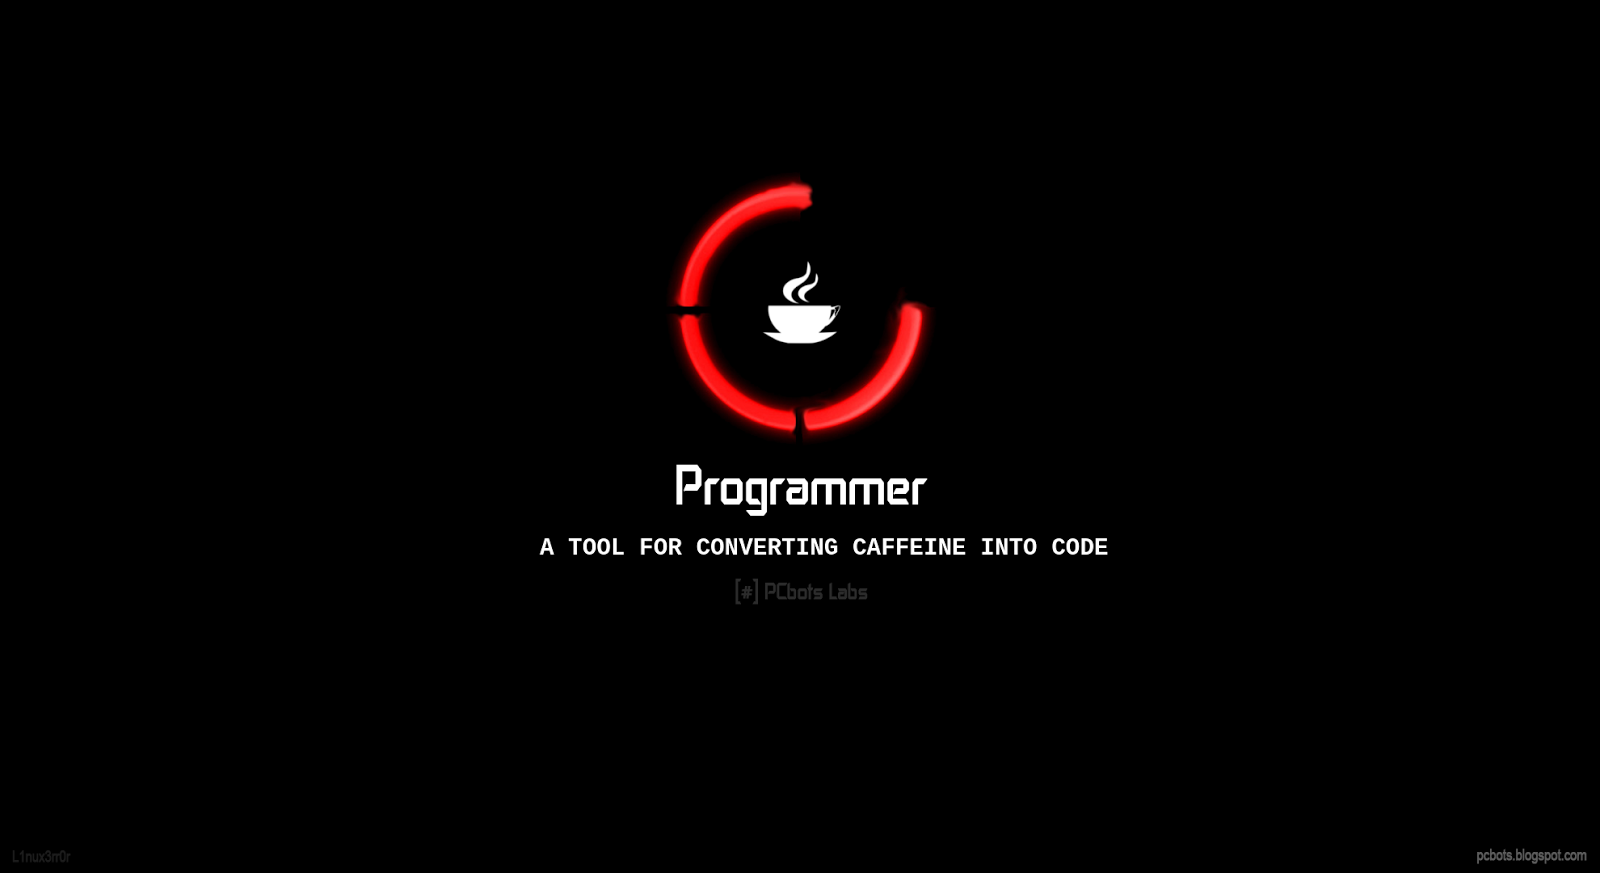 Programmers And Coders Wallpapers HD By PCbots - Part - II ~ PCbots Blog | Programmer ...